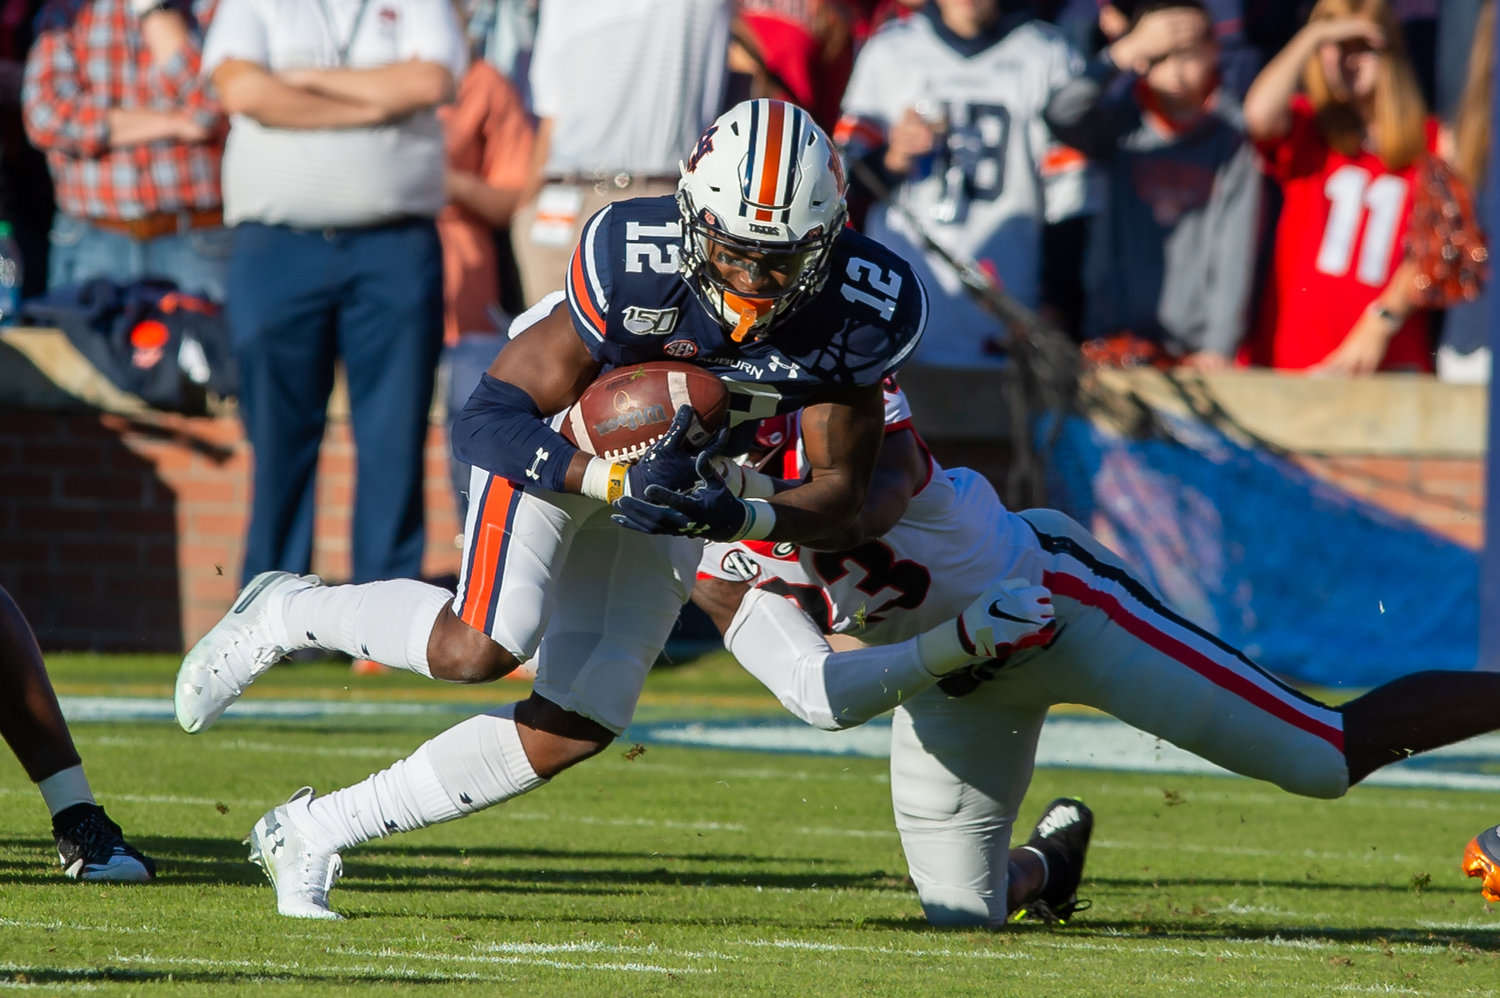 Auburn Tigers wide receiver Eli Stove (12) is brought down by Georgia Bulldogs defensive back Tyson Campbell (3) during the first half of Saturday's game, at Jordan-Hare Stadium in Auburn,, AL. Daily Mountain Eagle -  Jeff Johnsey